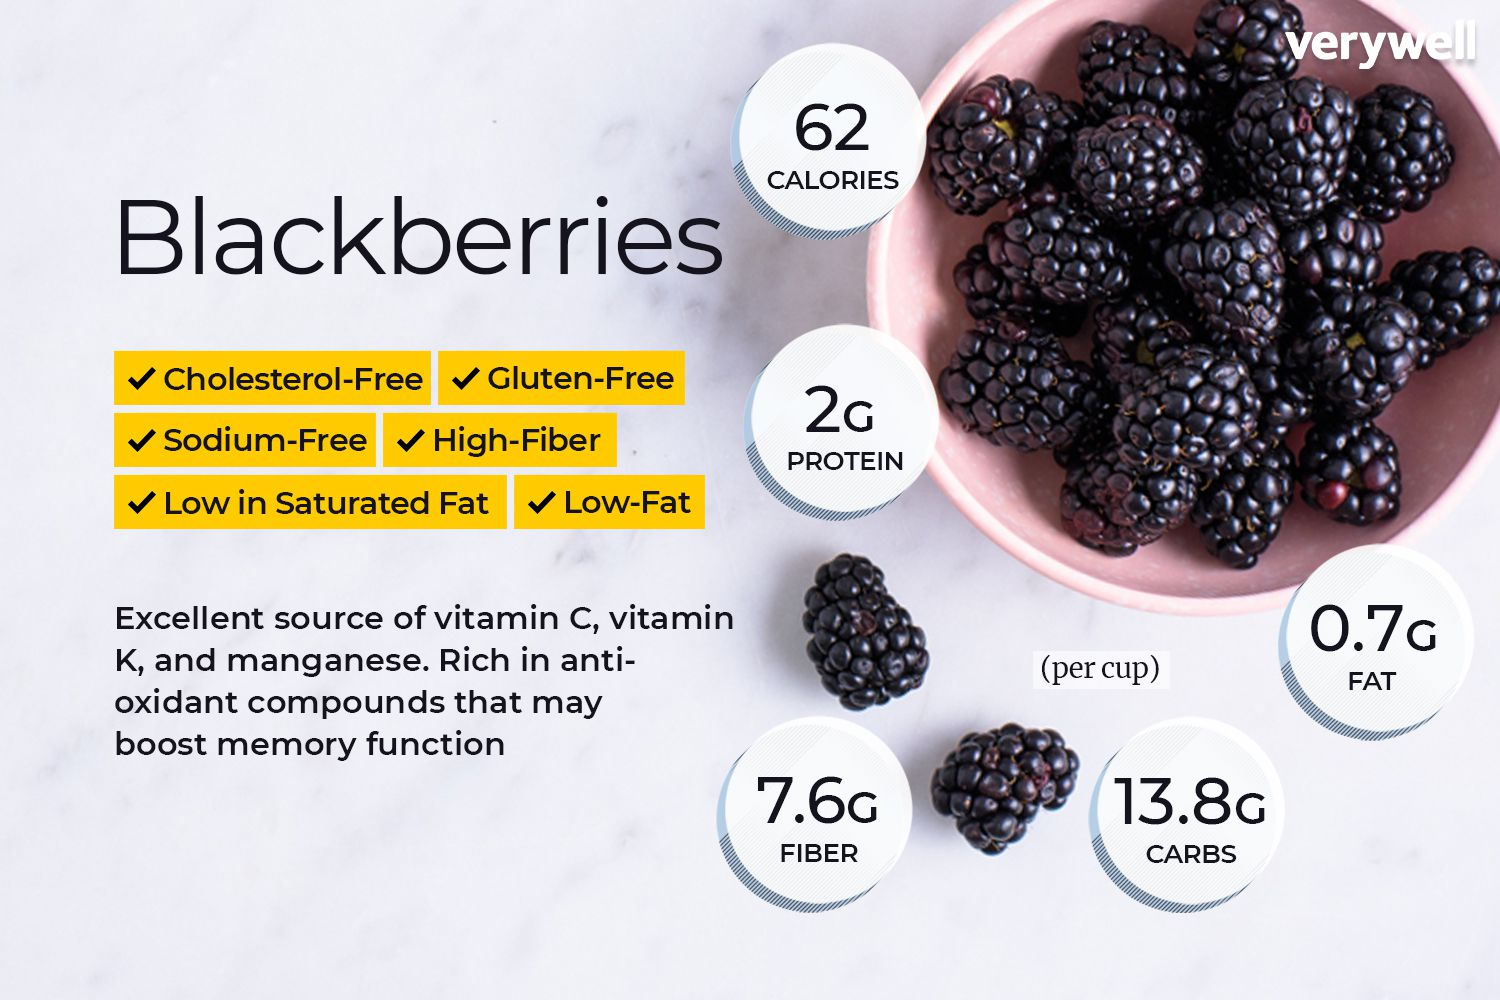 Blackberry Nutrition: Calories, Carbs, and Health Benefits